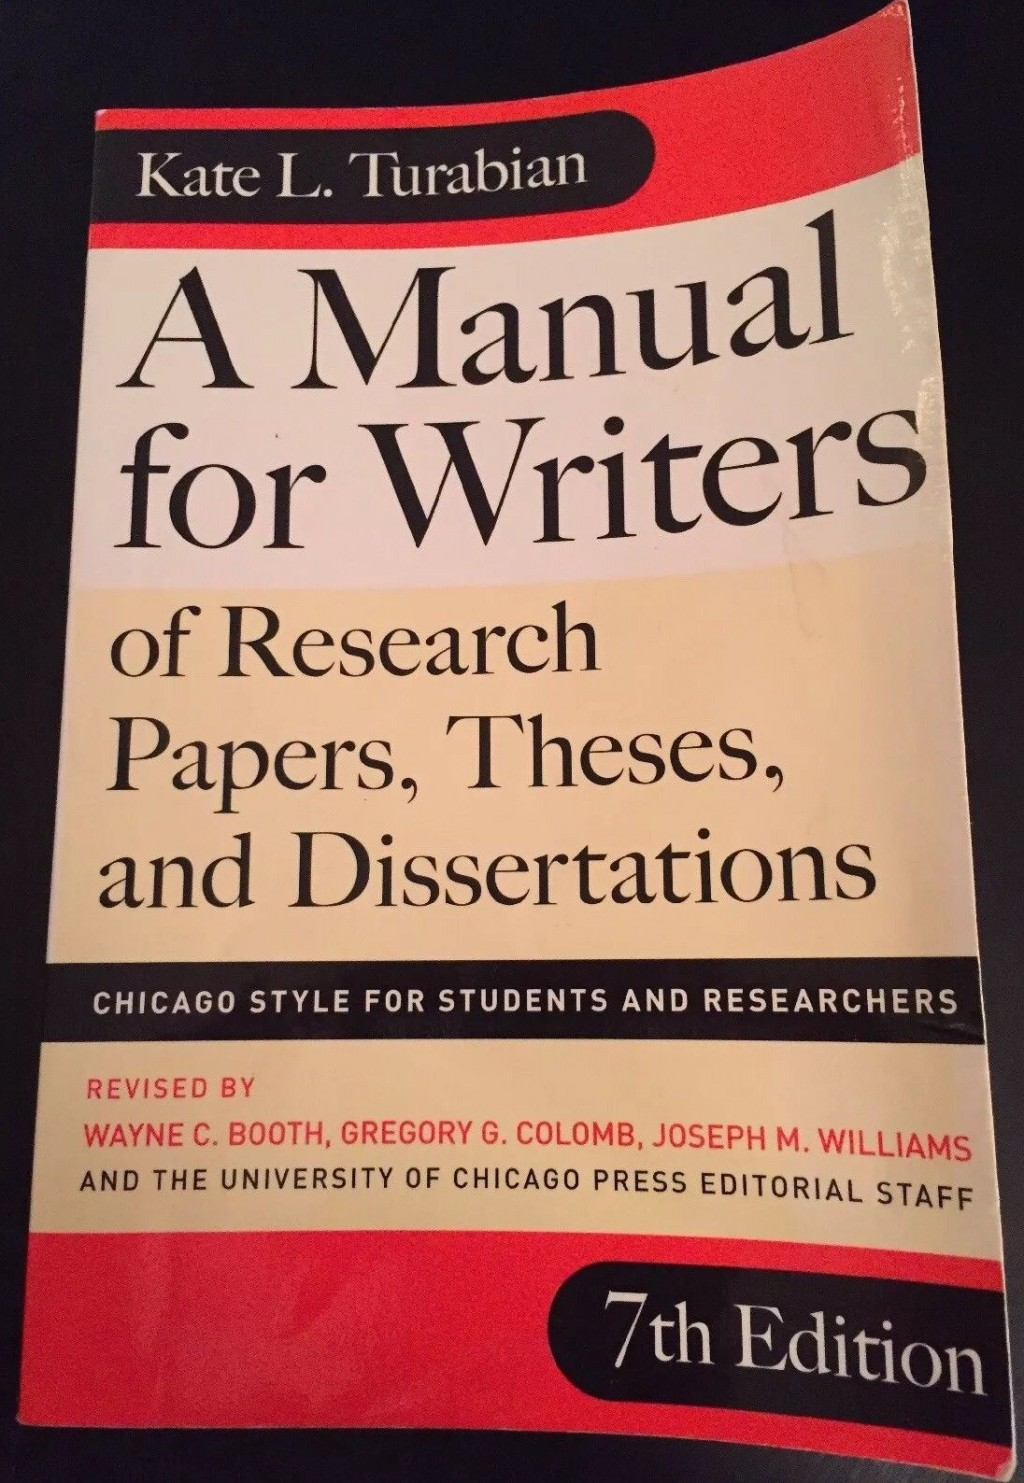 018 Research Paper Manual For Writers Of Papers Theses And Dissertations Chicago Style Students S Rare A Large